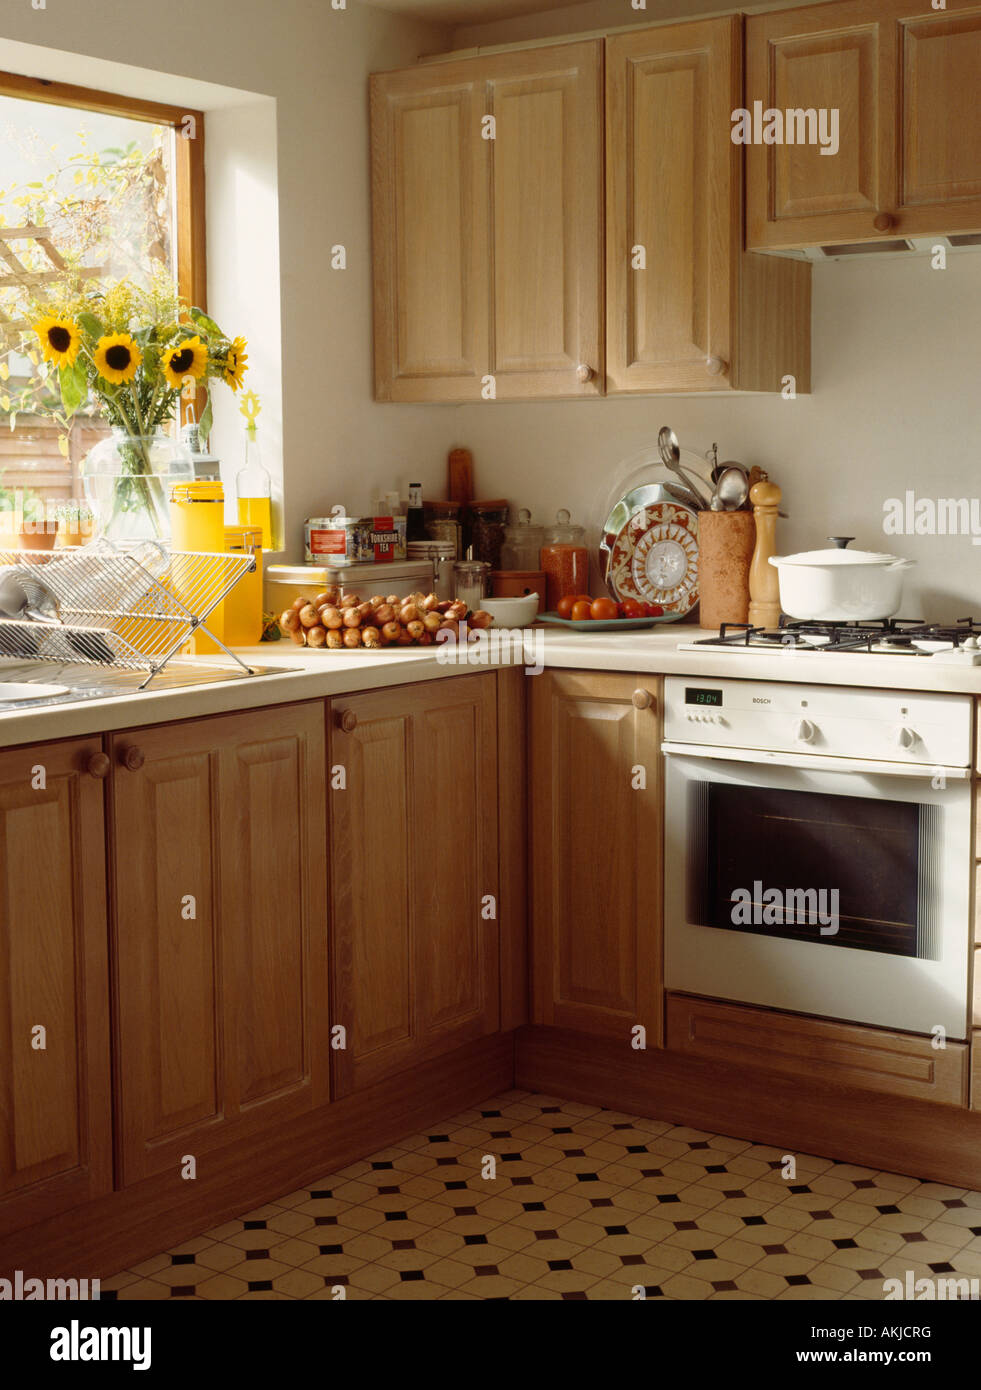 White Oven In Traditional Pine Kitchen With Yellow Sunflowers On The Stock Photo Alamy